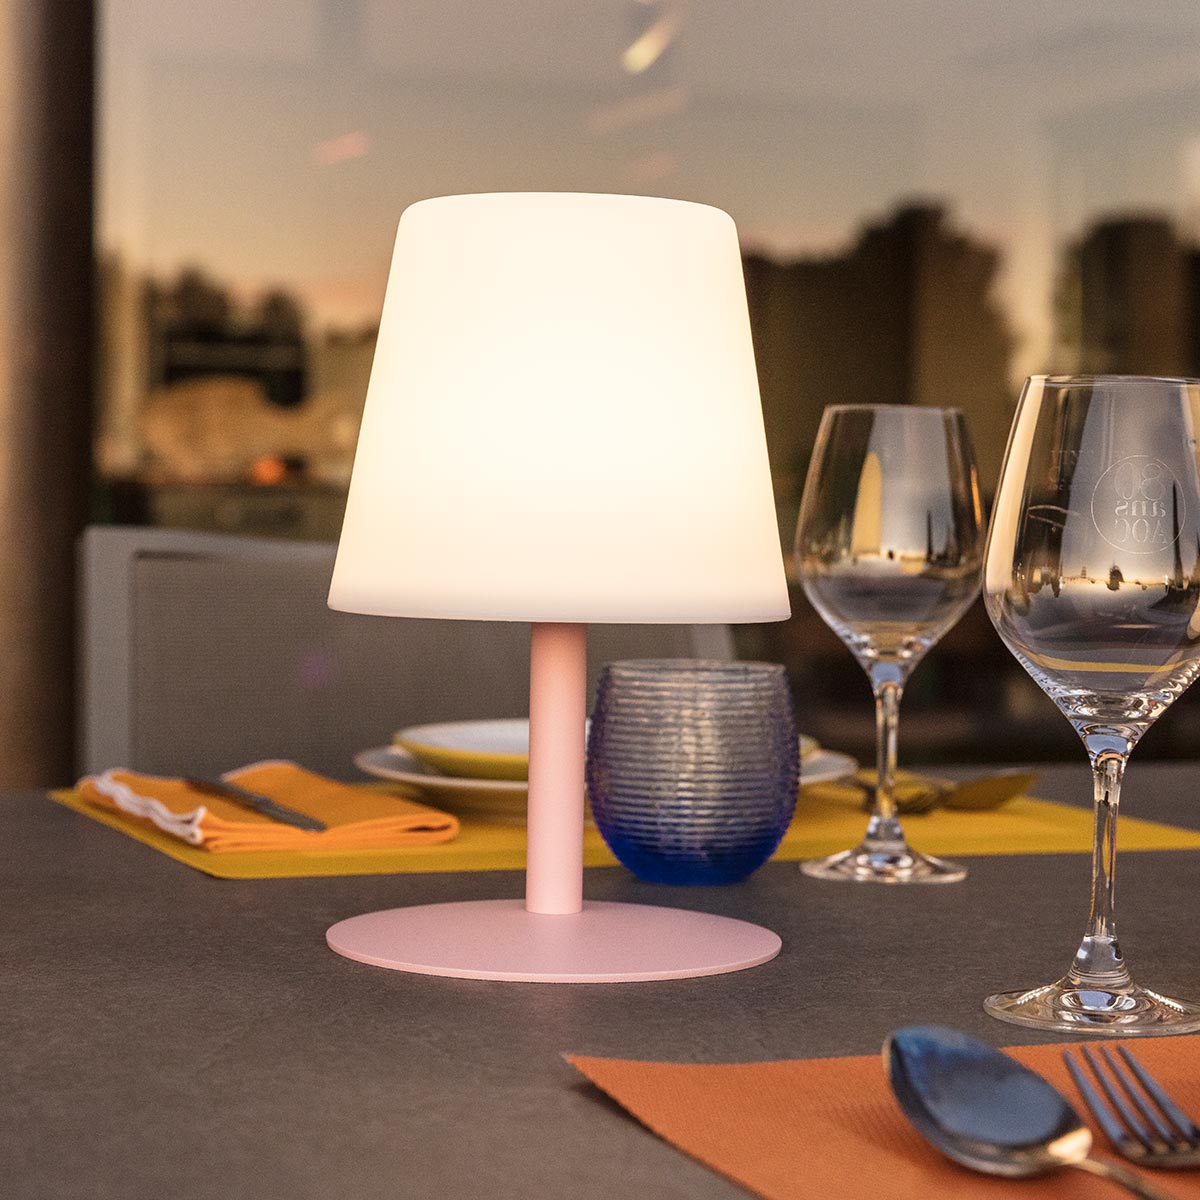 Lampe de table sans fil pied en acier rose LED blanc chaud/blanc dimmable STANDY MINI Candy H25cm - REDDECO.com